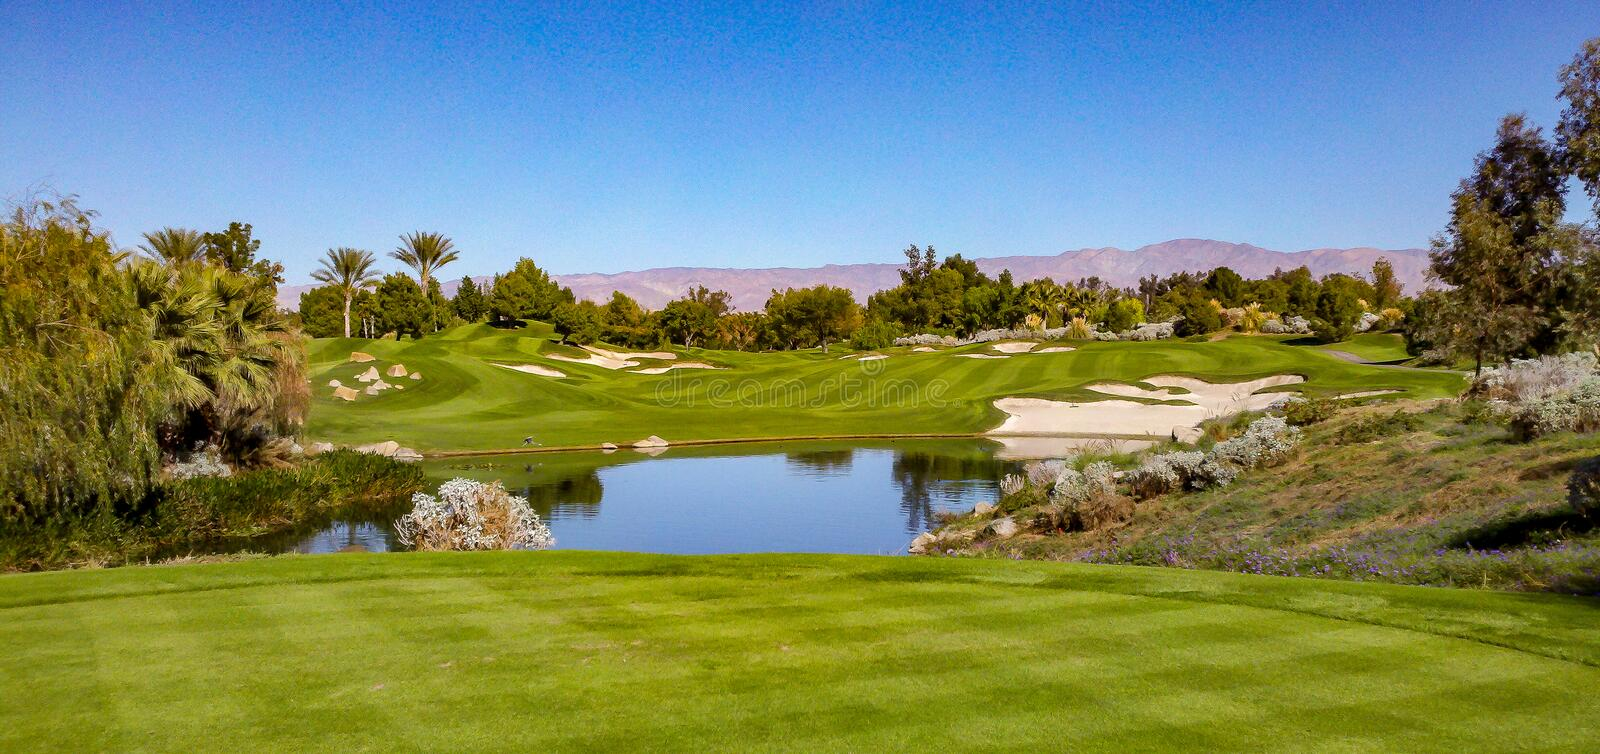 Beautiful Fairway At Indian Wells Golf Course Near Palm Springs. Beautiful fairway view at Indian Wells Golf Course near Palm Springs with mountains, blue skies stock photos